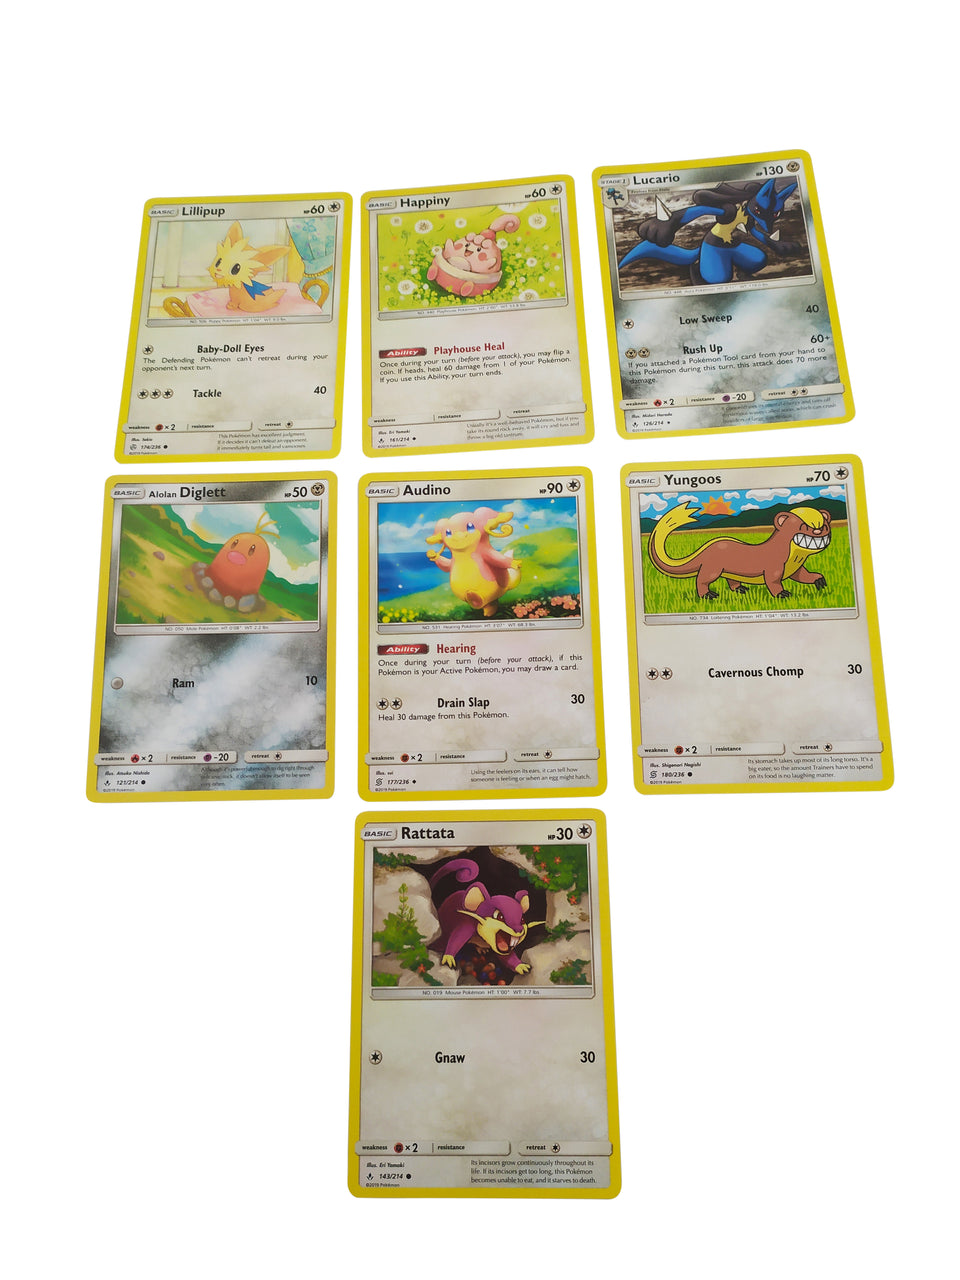 7 lot of pokemon cards - included : Lillipup , Diglett , Audino , Happiny , Lucario , Yungoos , Rattata